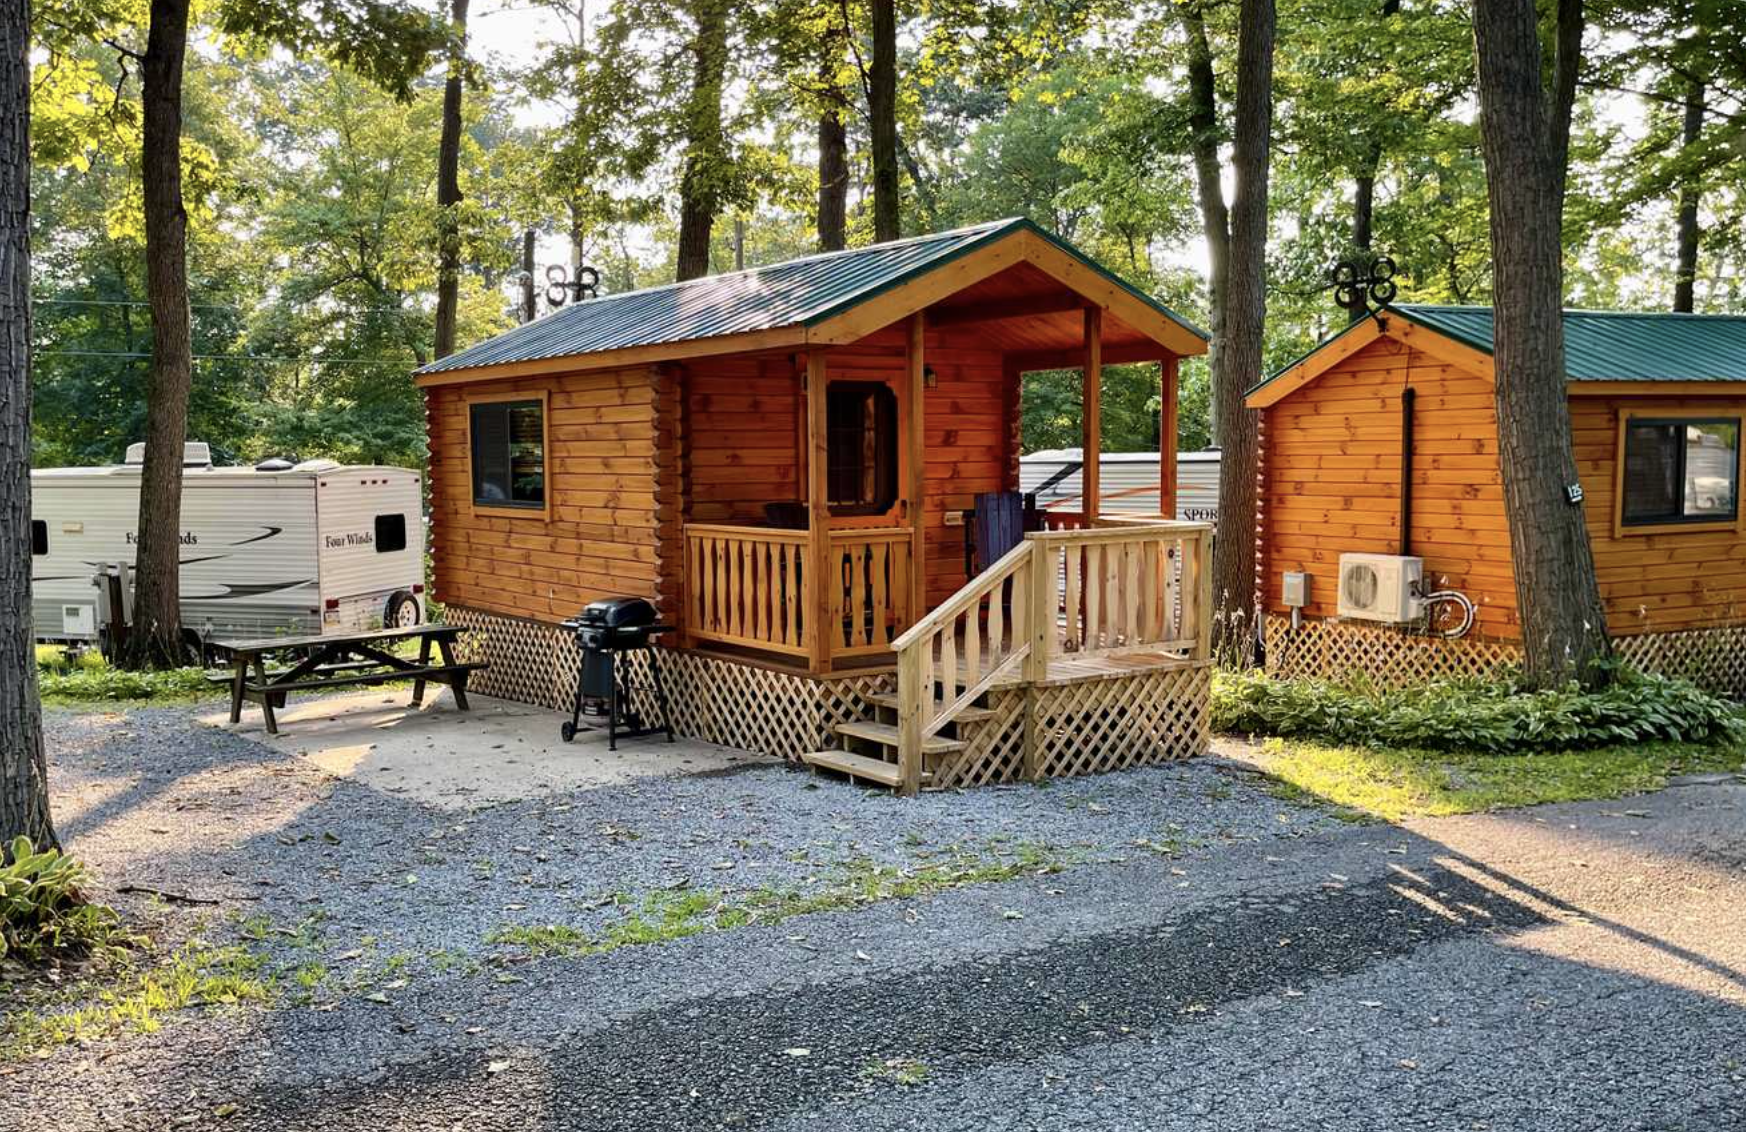 Cabins at campground with trees and RV in the background